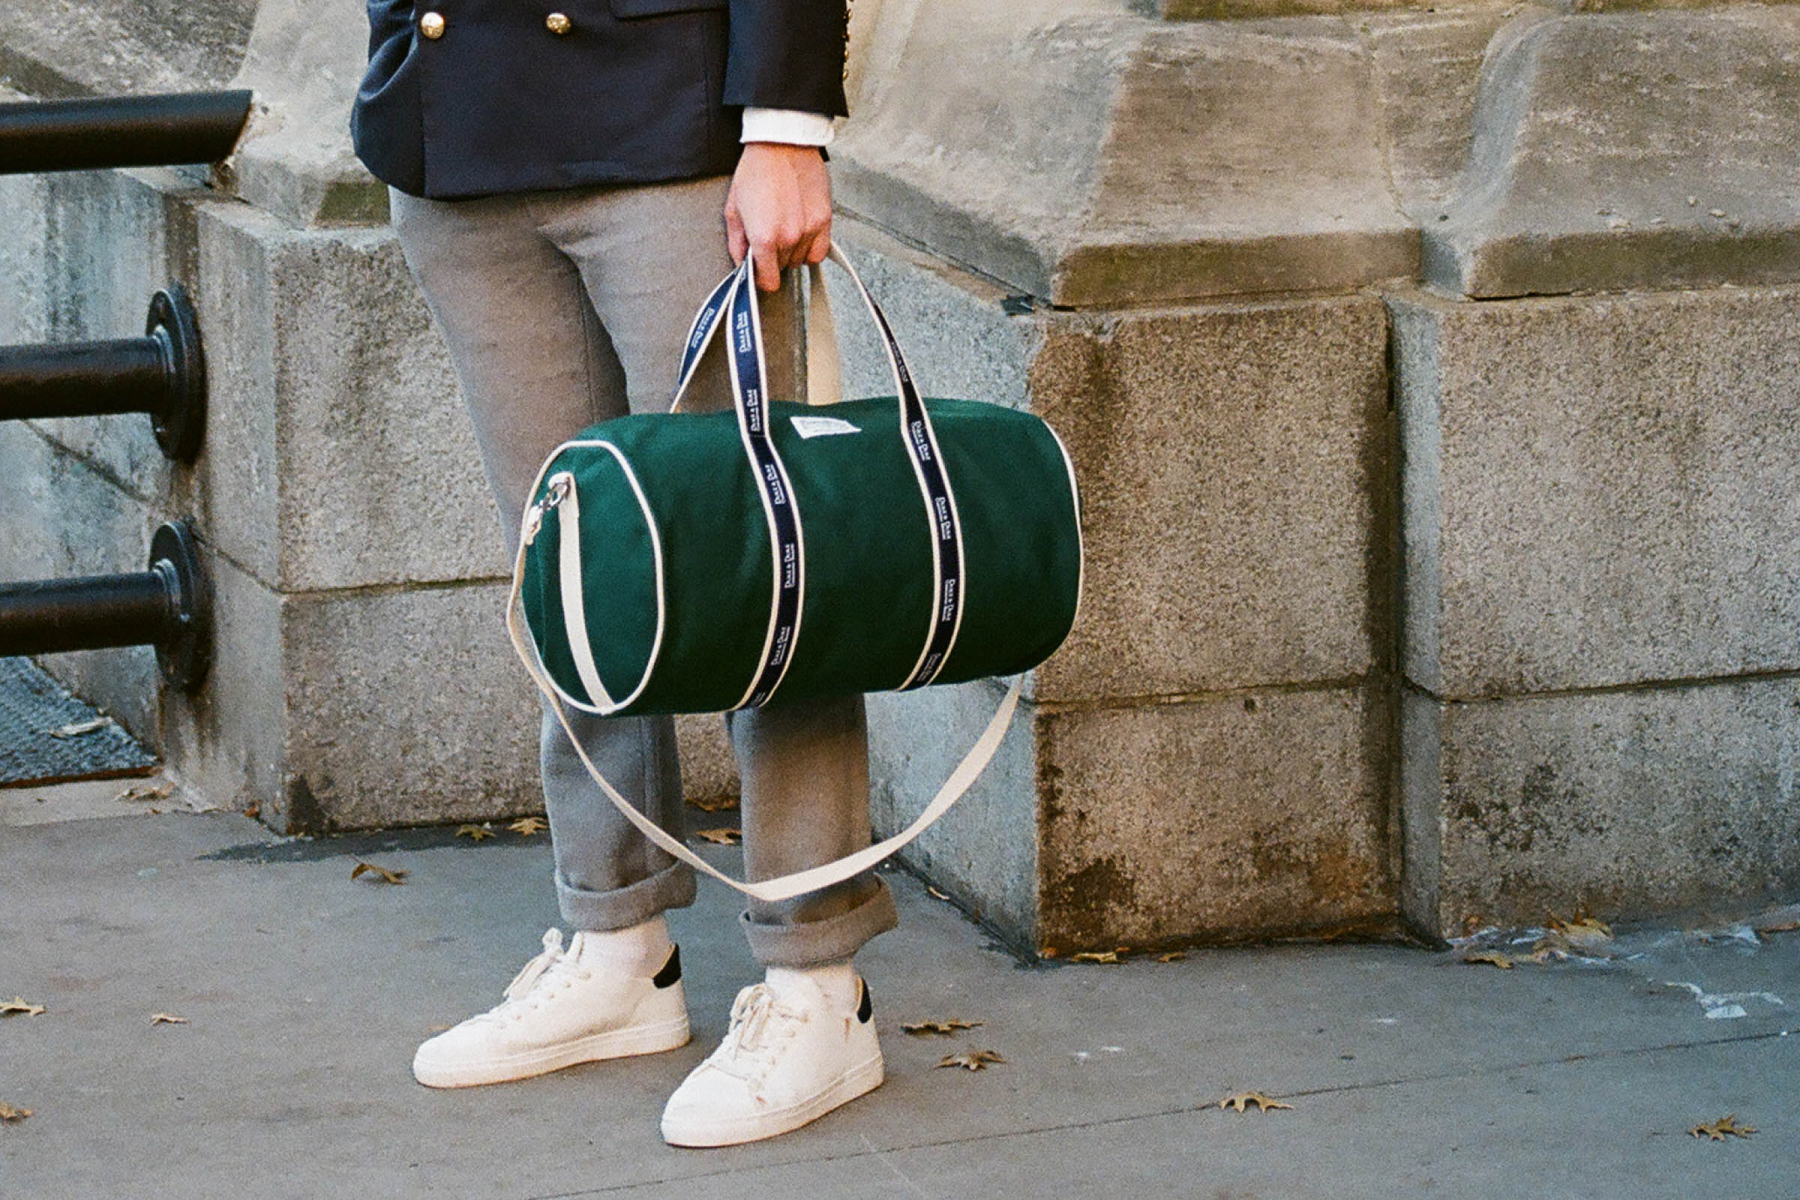 The banker bag might be the next big streetwear accessory